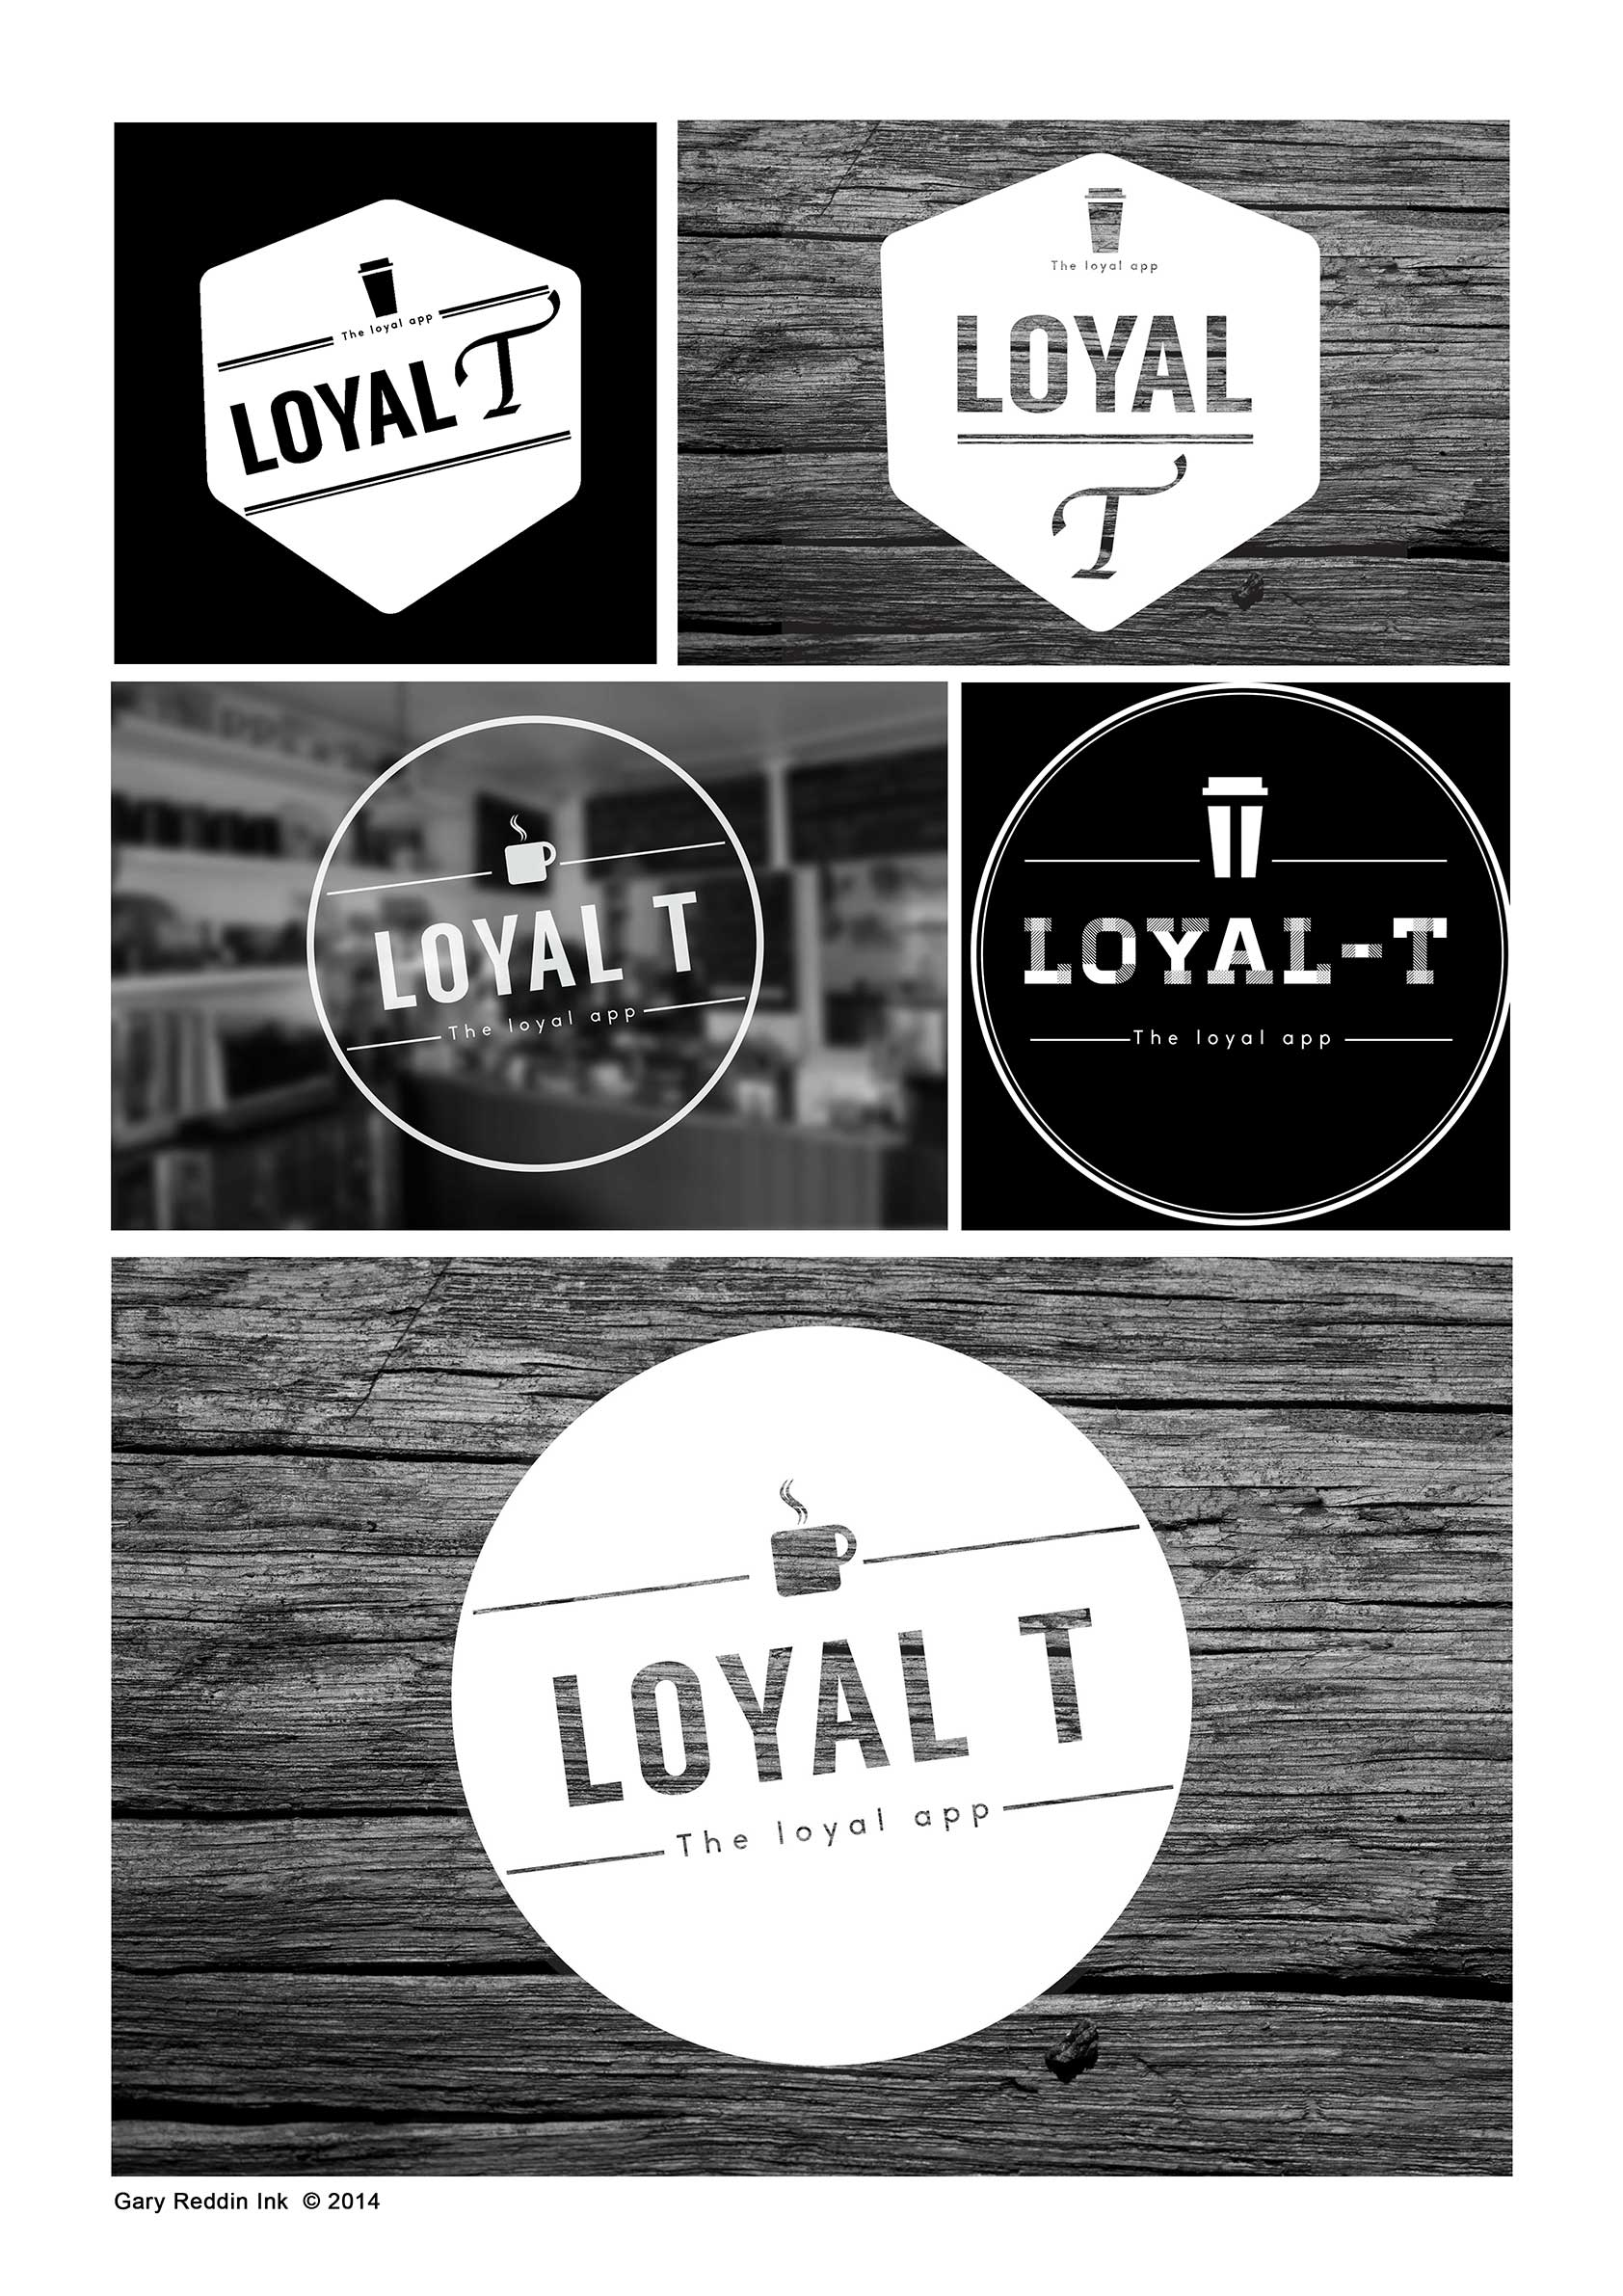 The new logo for 'Loyal-T' an awesome company developing ingenious apps check them out http://loyalt.net/